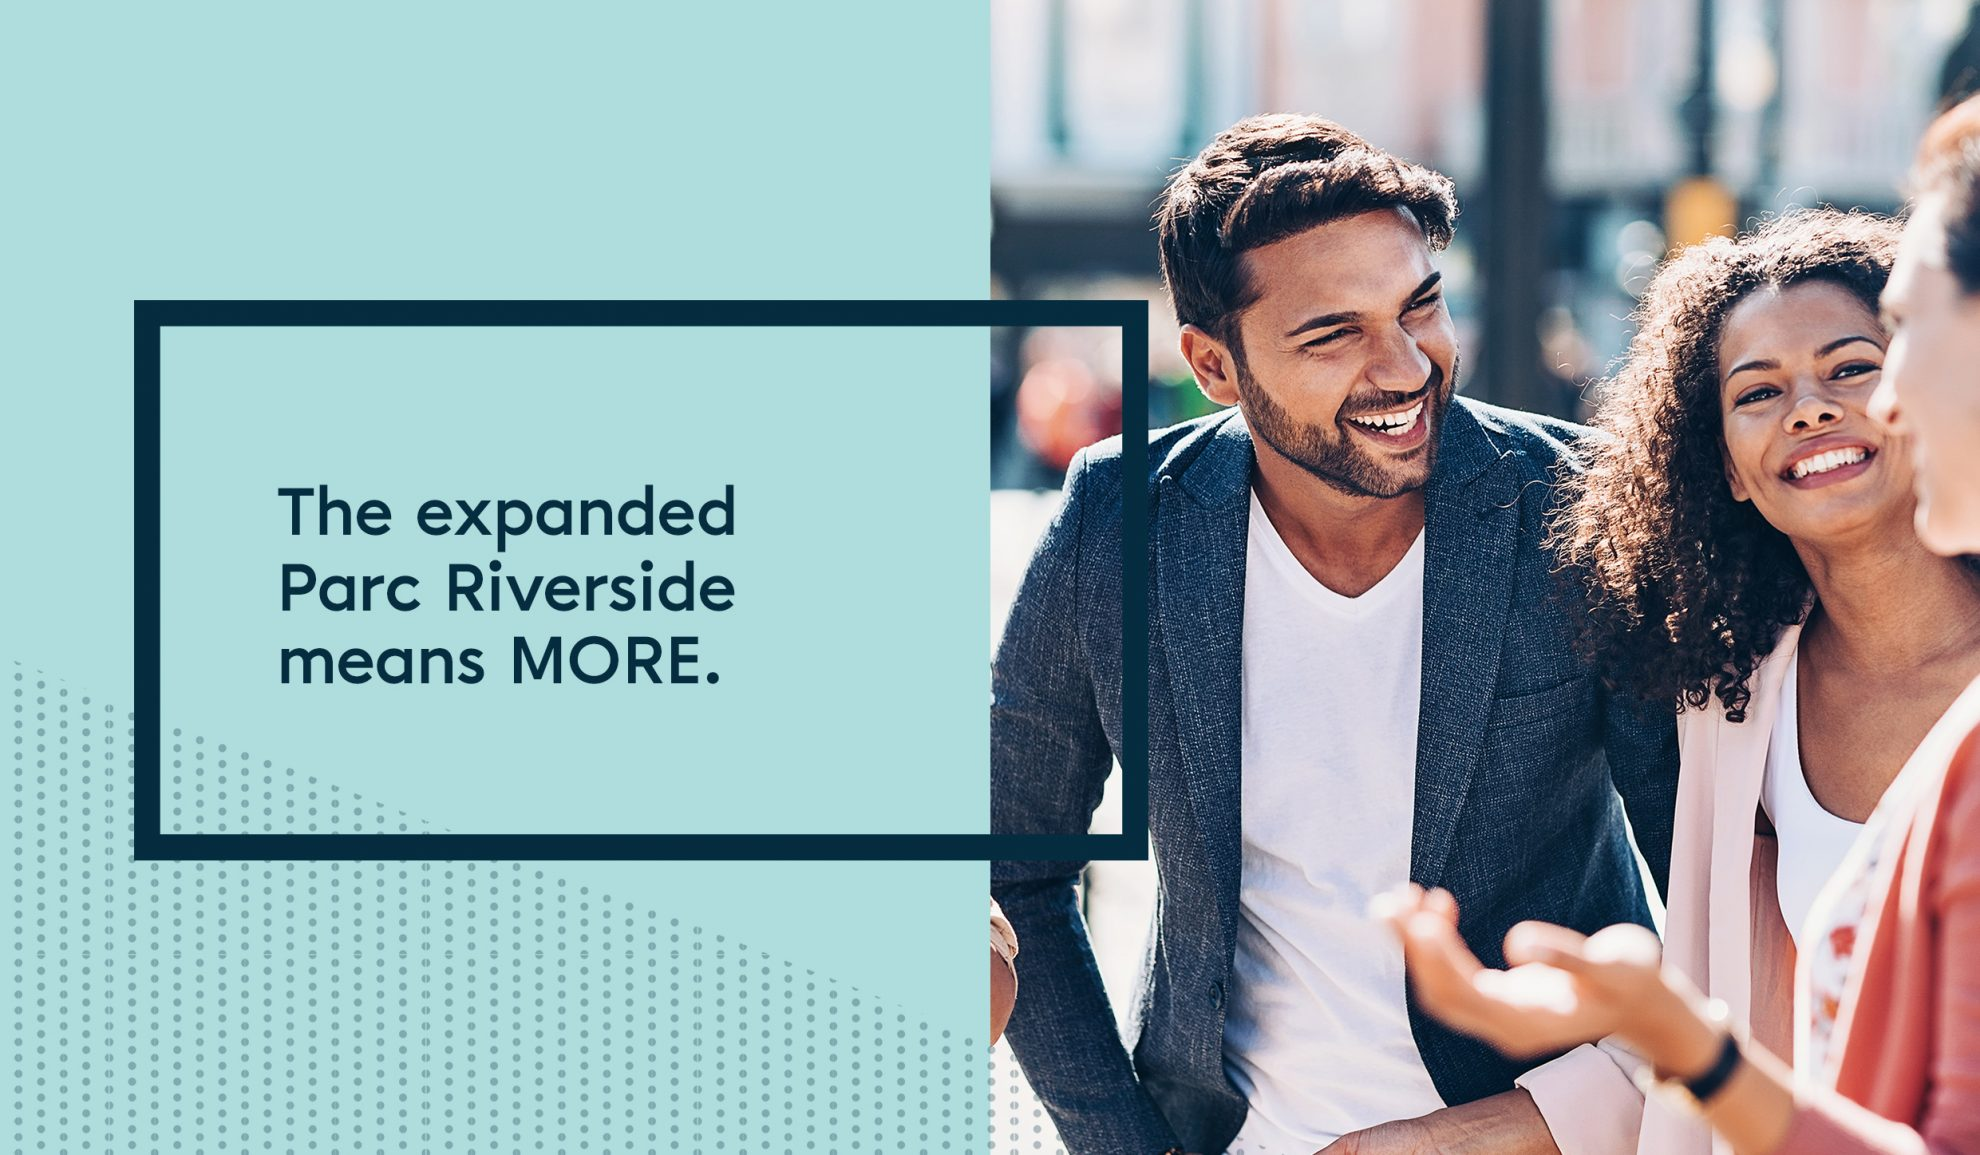 split image with teal rectangle on the left with inner greenish/blue rectangle and text in blue that reads, The expanded Parc Riverside means MORE. on the right is a photo of two men and one women in casual clothing talking and laughing.